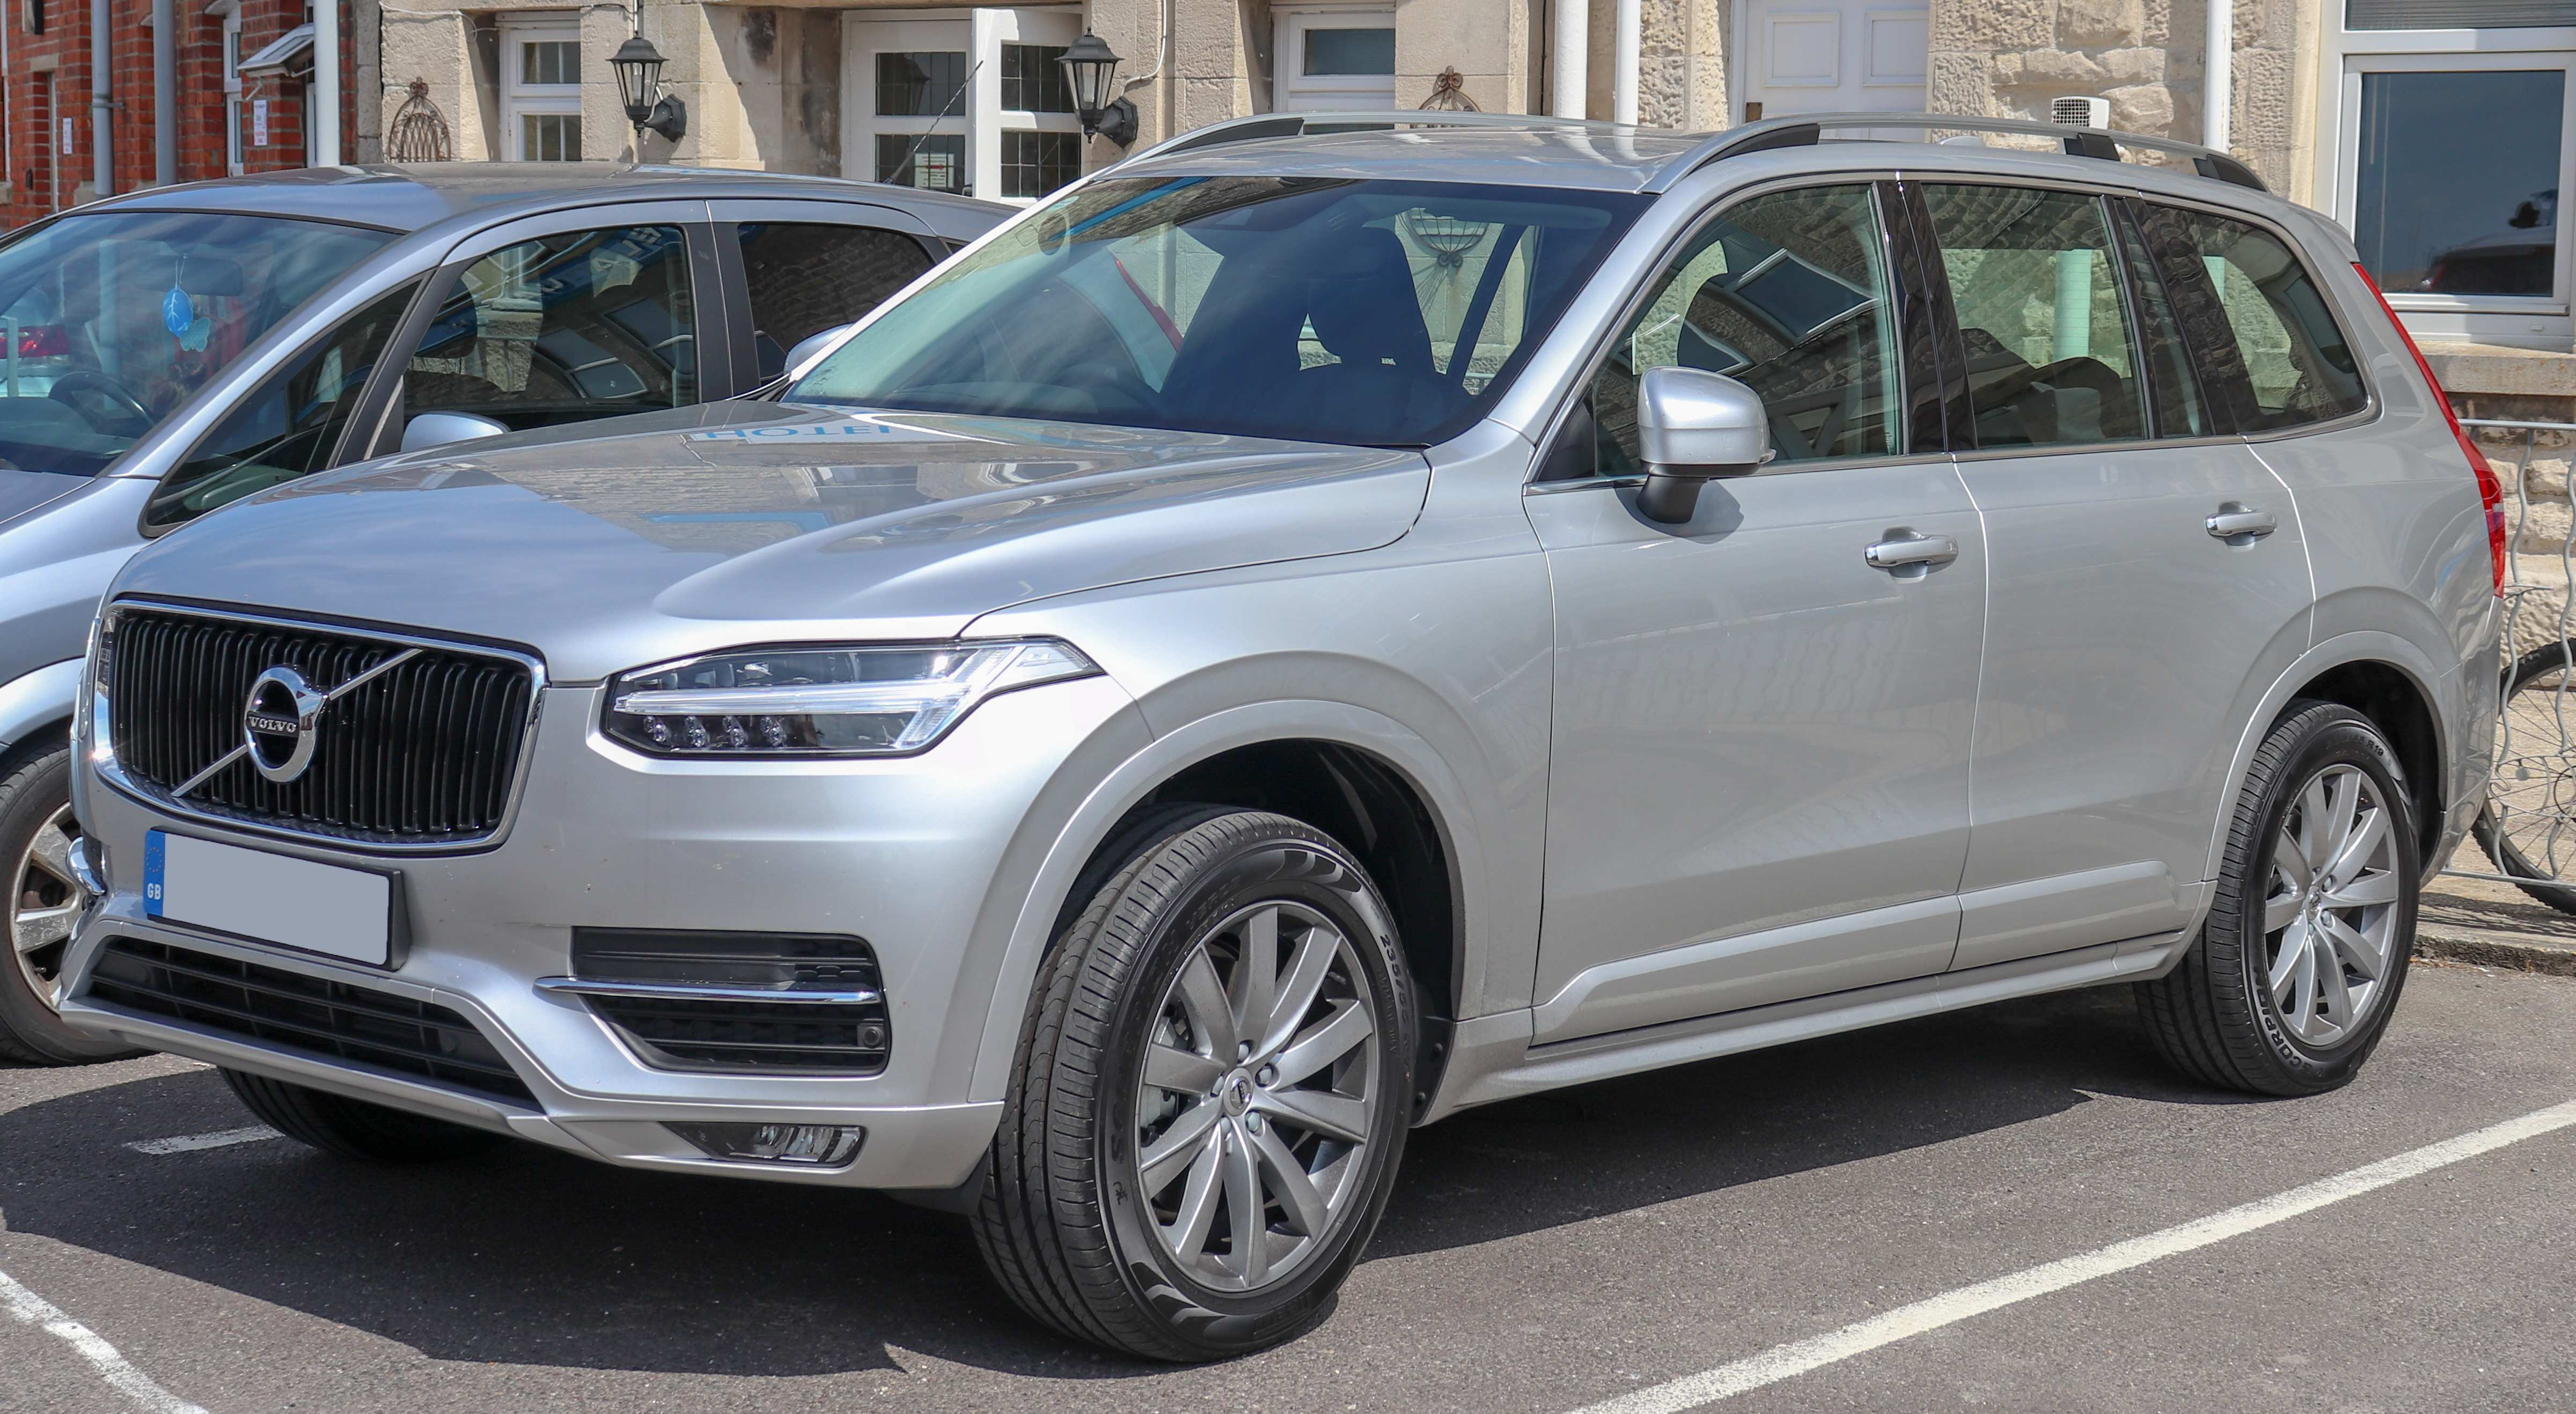 21 Best Review Best Volvo 2019 Xc90 Release Date And Specs Review with Best Volvo 2019 Xc90 Release Date And Specs